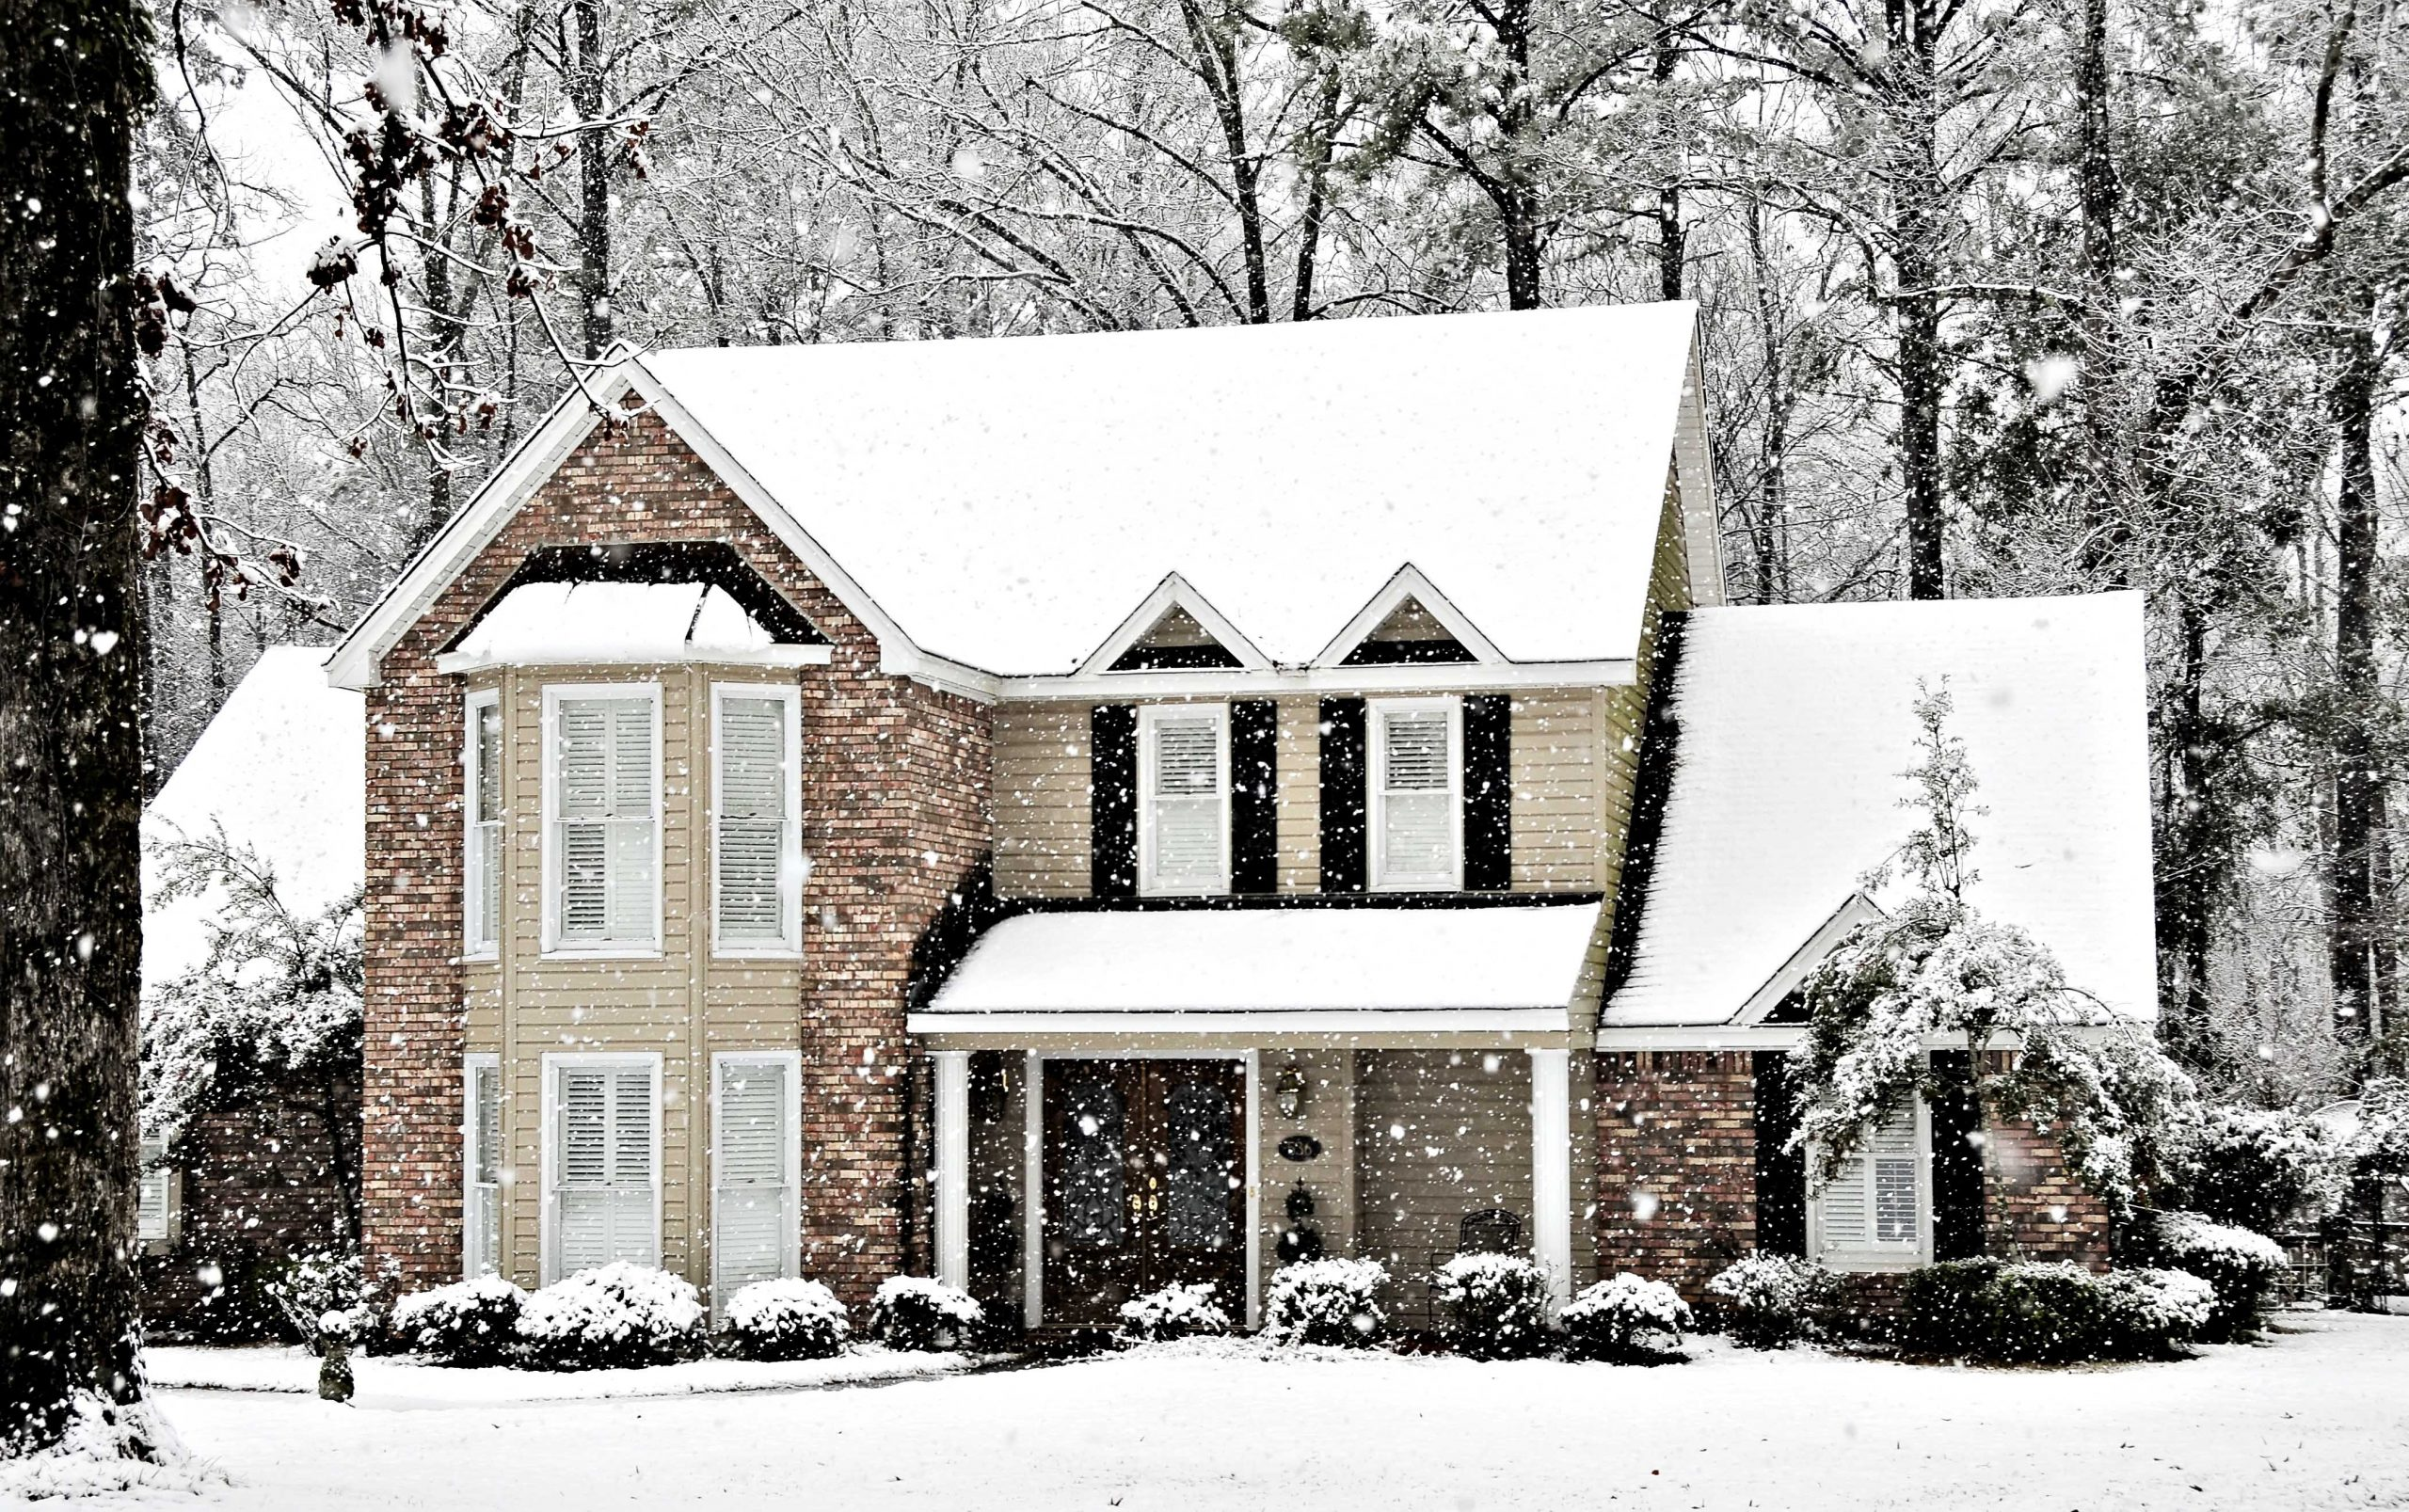 Four Tips to Make Sure Your Home Is Prepared for the Rest of Winter